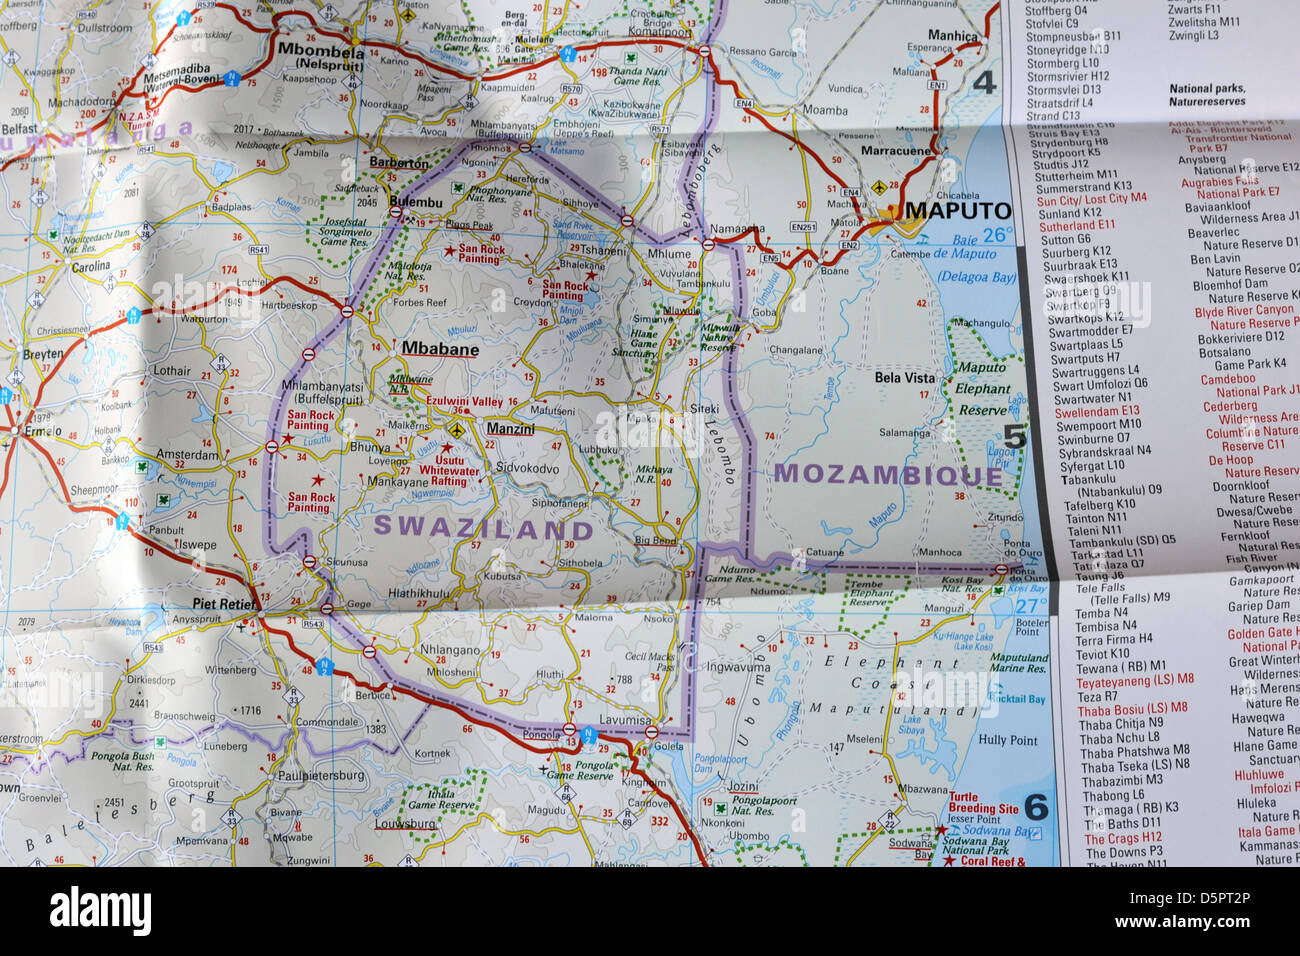 Images of a map of Southern Africa. Stock Photo